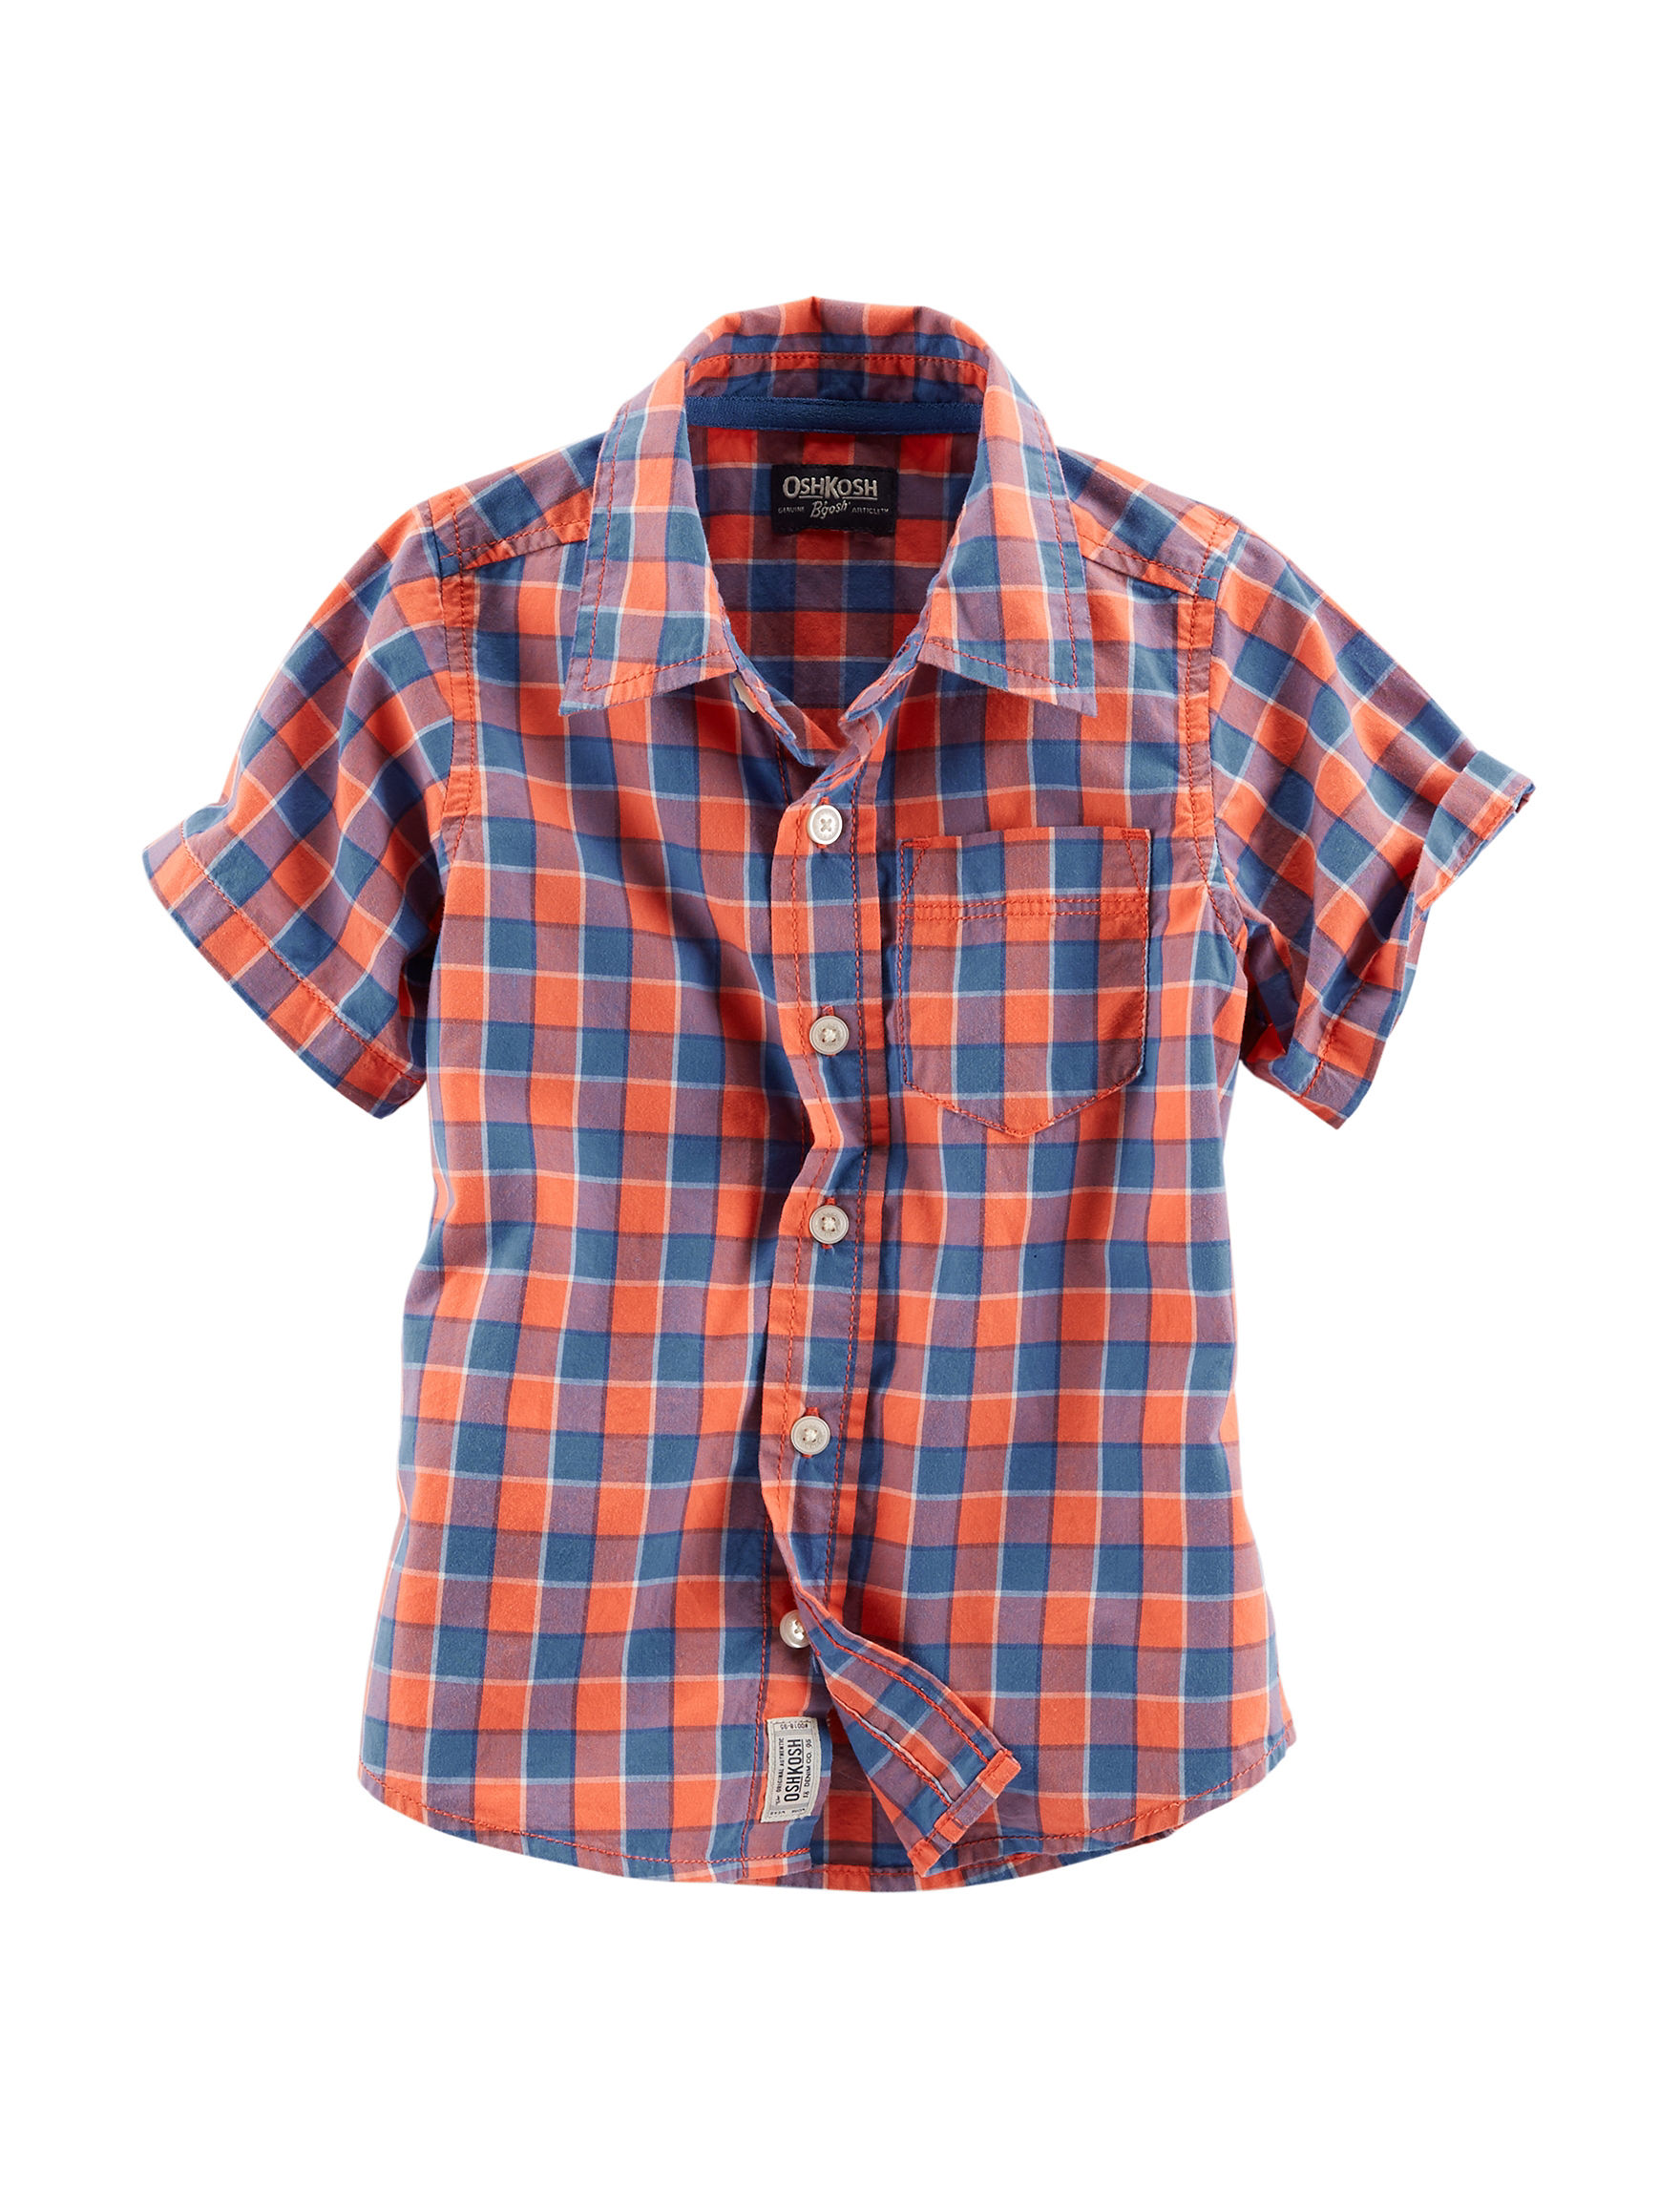 Oshkosh B'Gosh Blue Casual Button Down Shirts